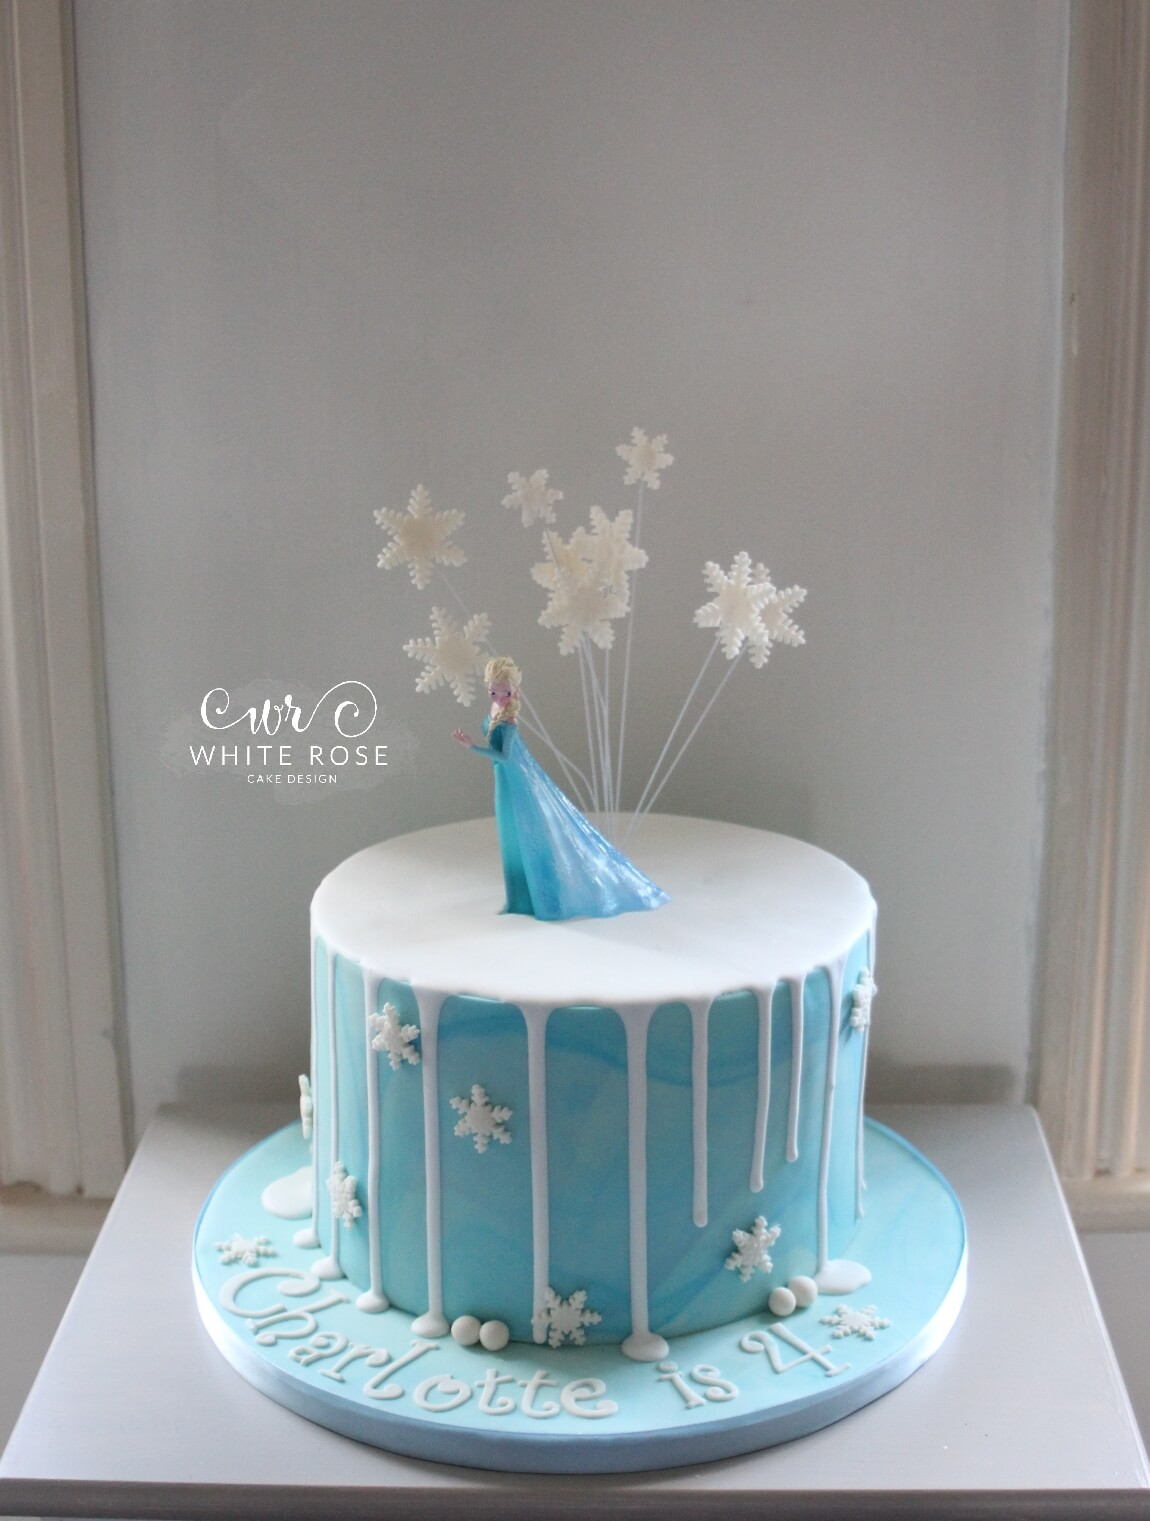 Elsa from Frozen Themed 4th Birthday Cake by White Rose Cake Design in West Yorkshire